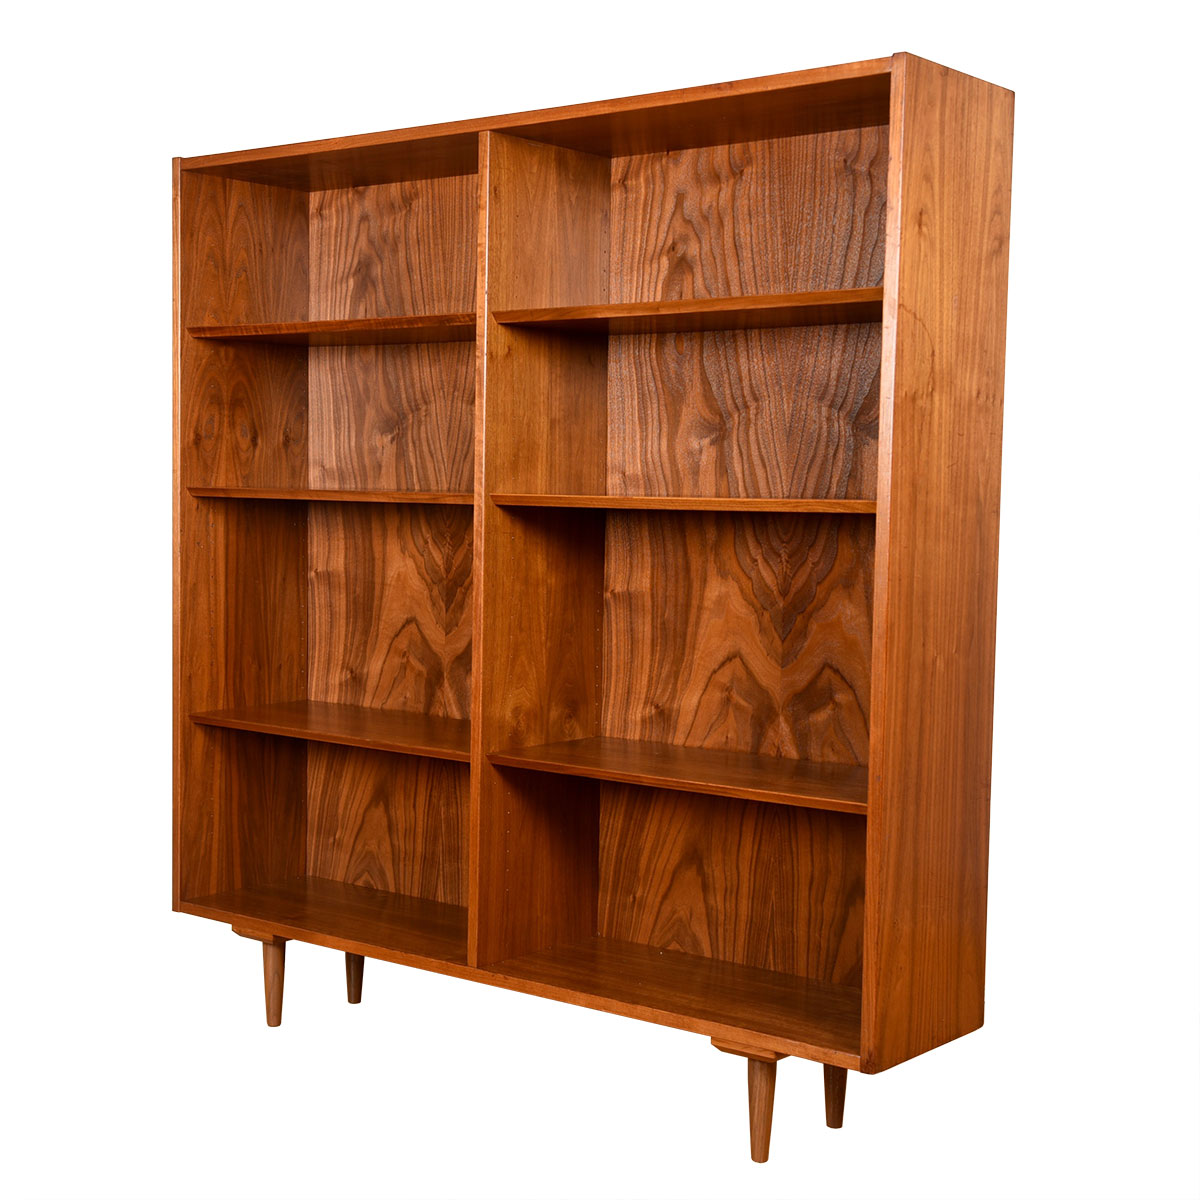 Richly-Grained Walnut Adjustable Bookcase